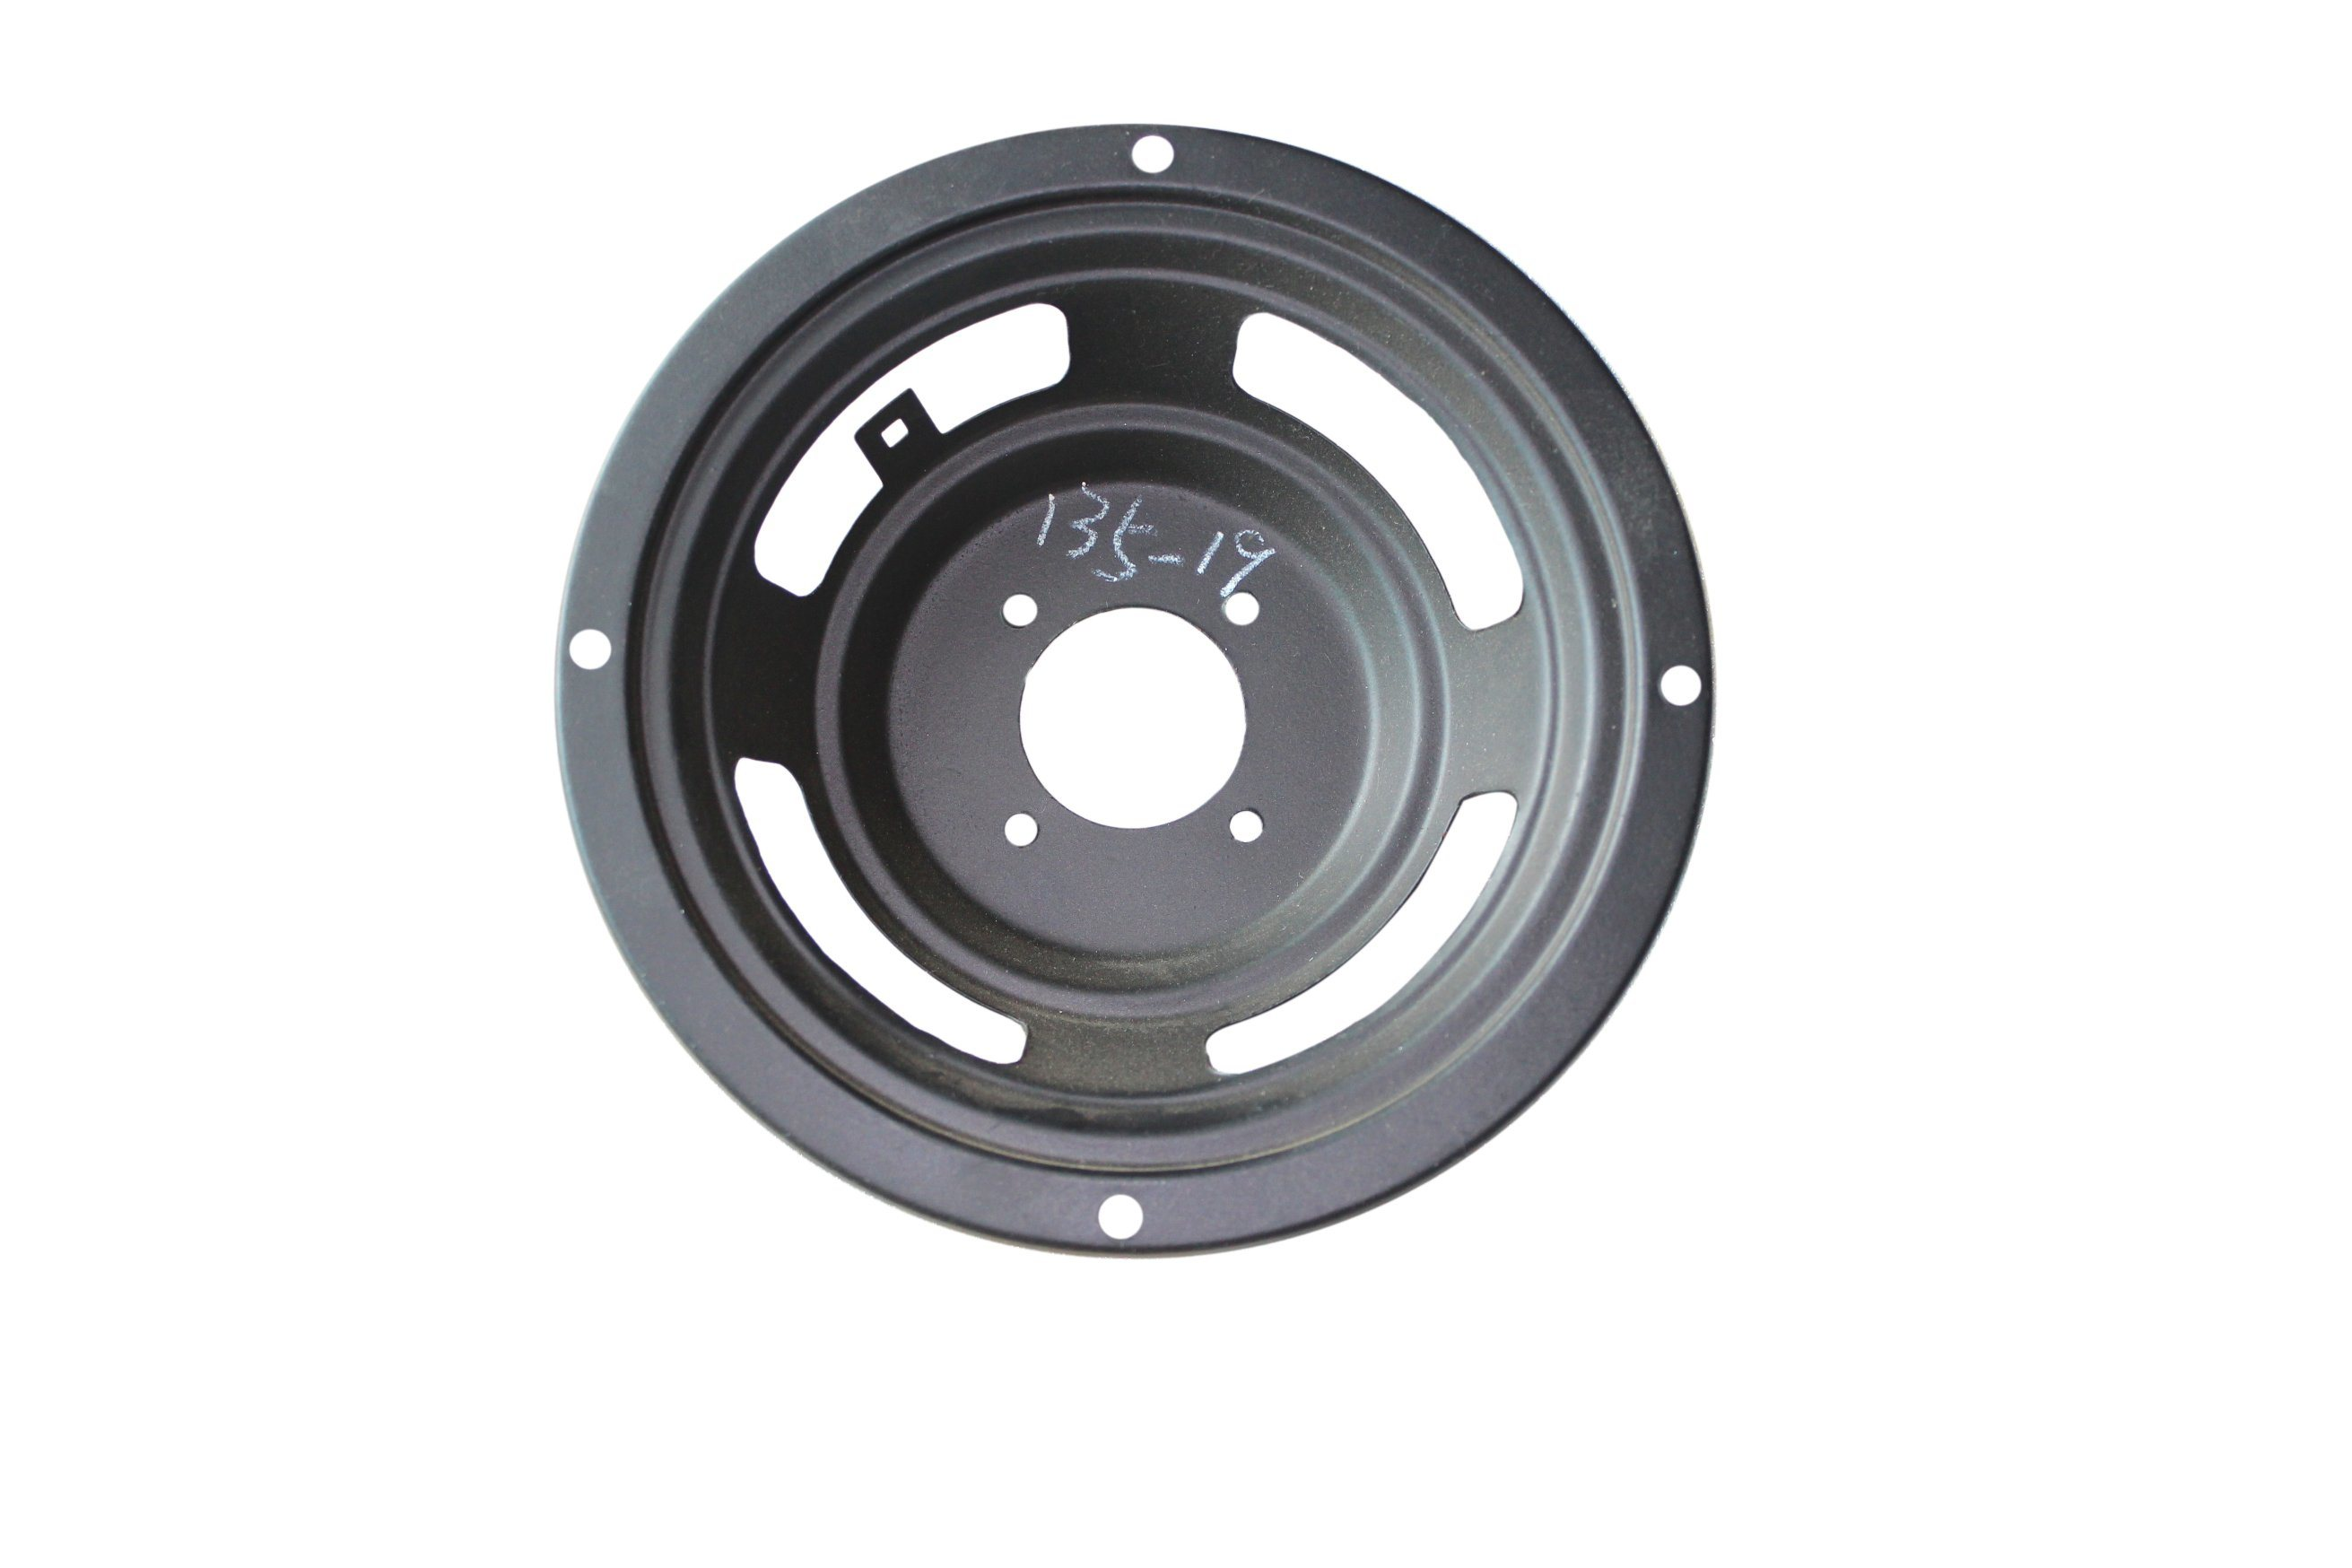 New Design High Quality 5inch Die Cast Speaker Parts-Speaker Basket